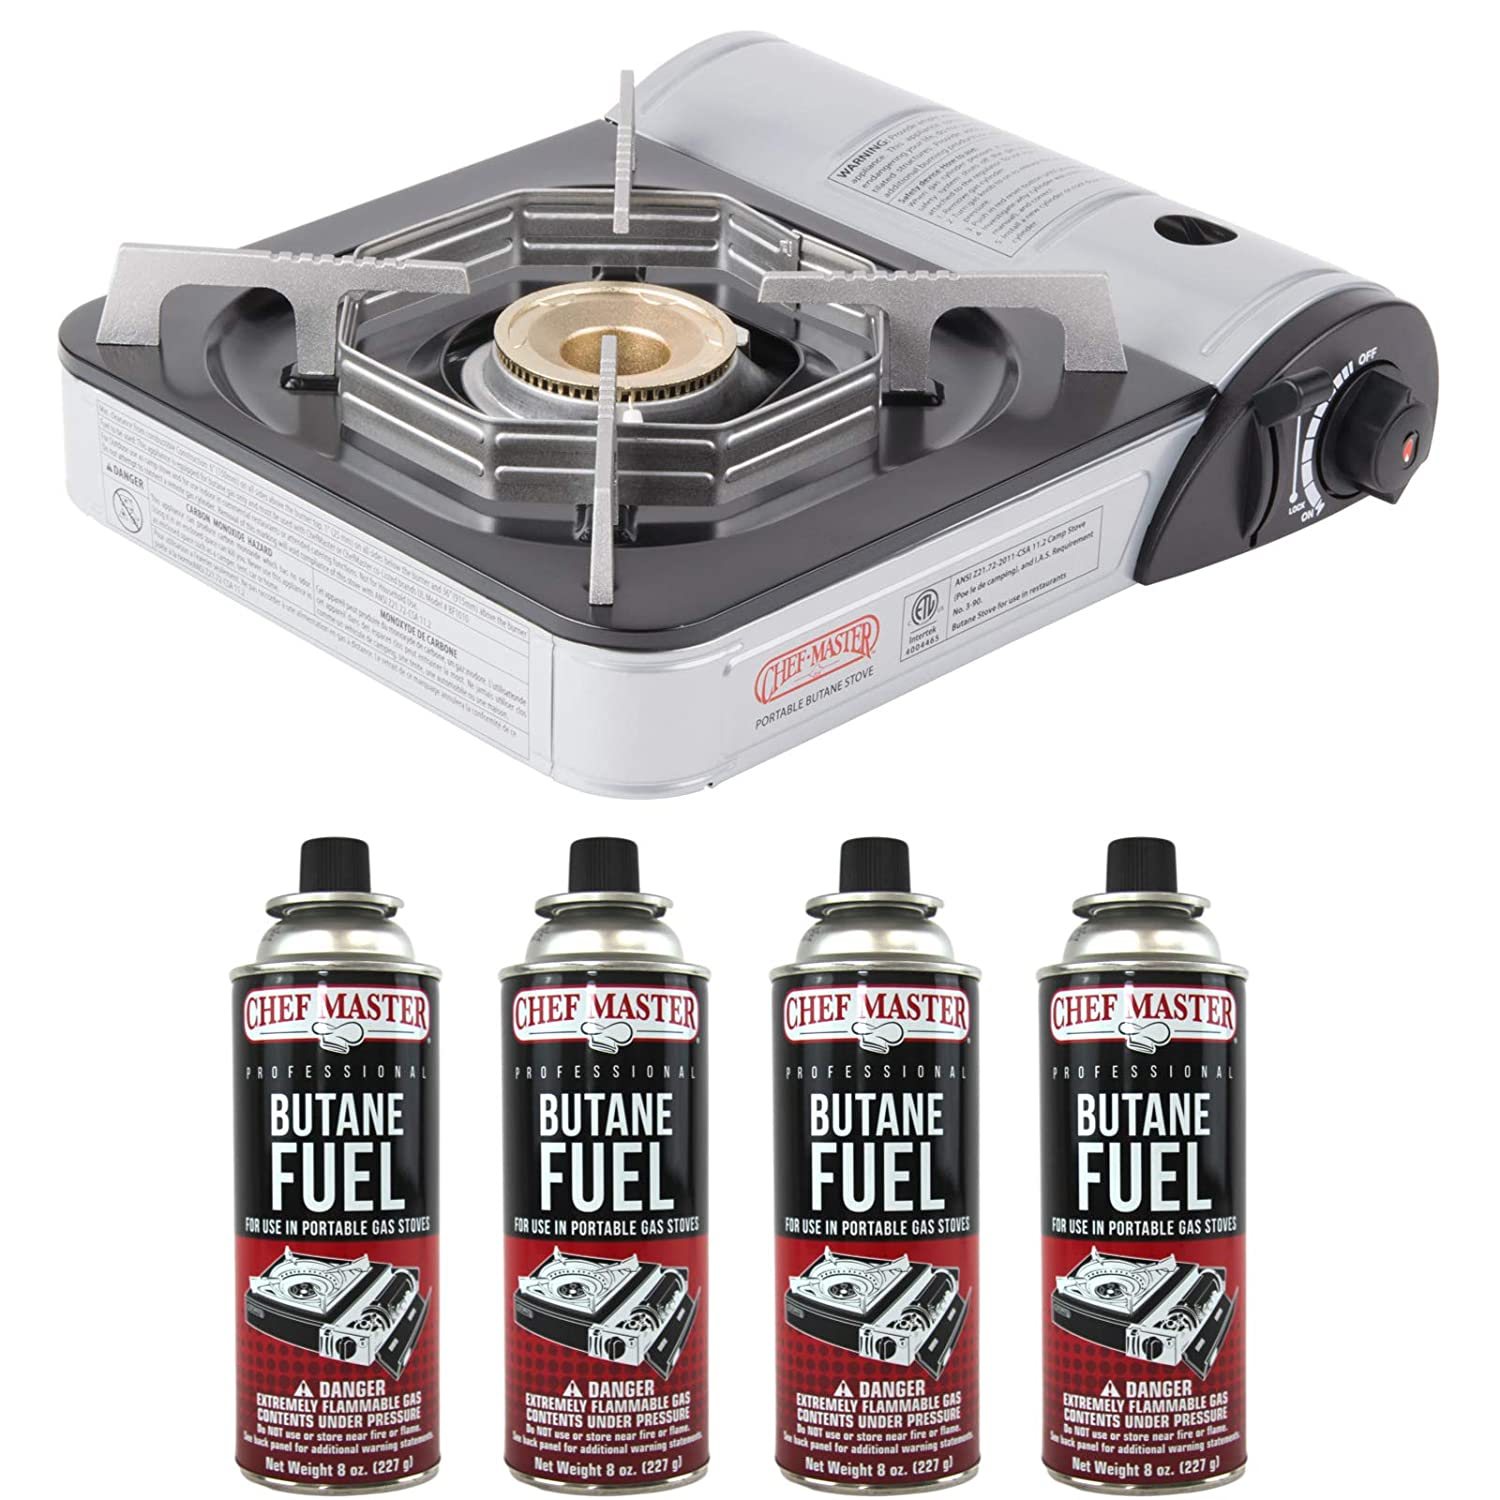 Chef-Master 90011 Portable Butane Stove | 10,000 BTU Outlet | Carrying Case Included | Stove + 4 Fuel Canisters